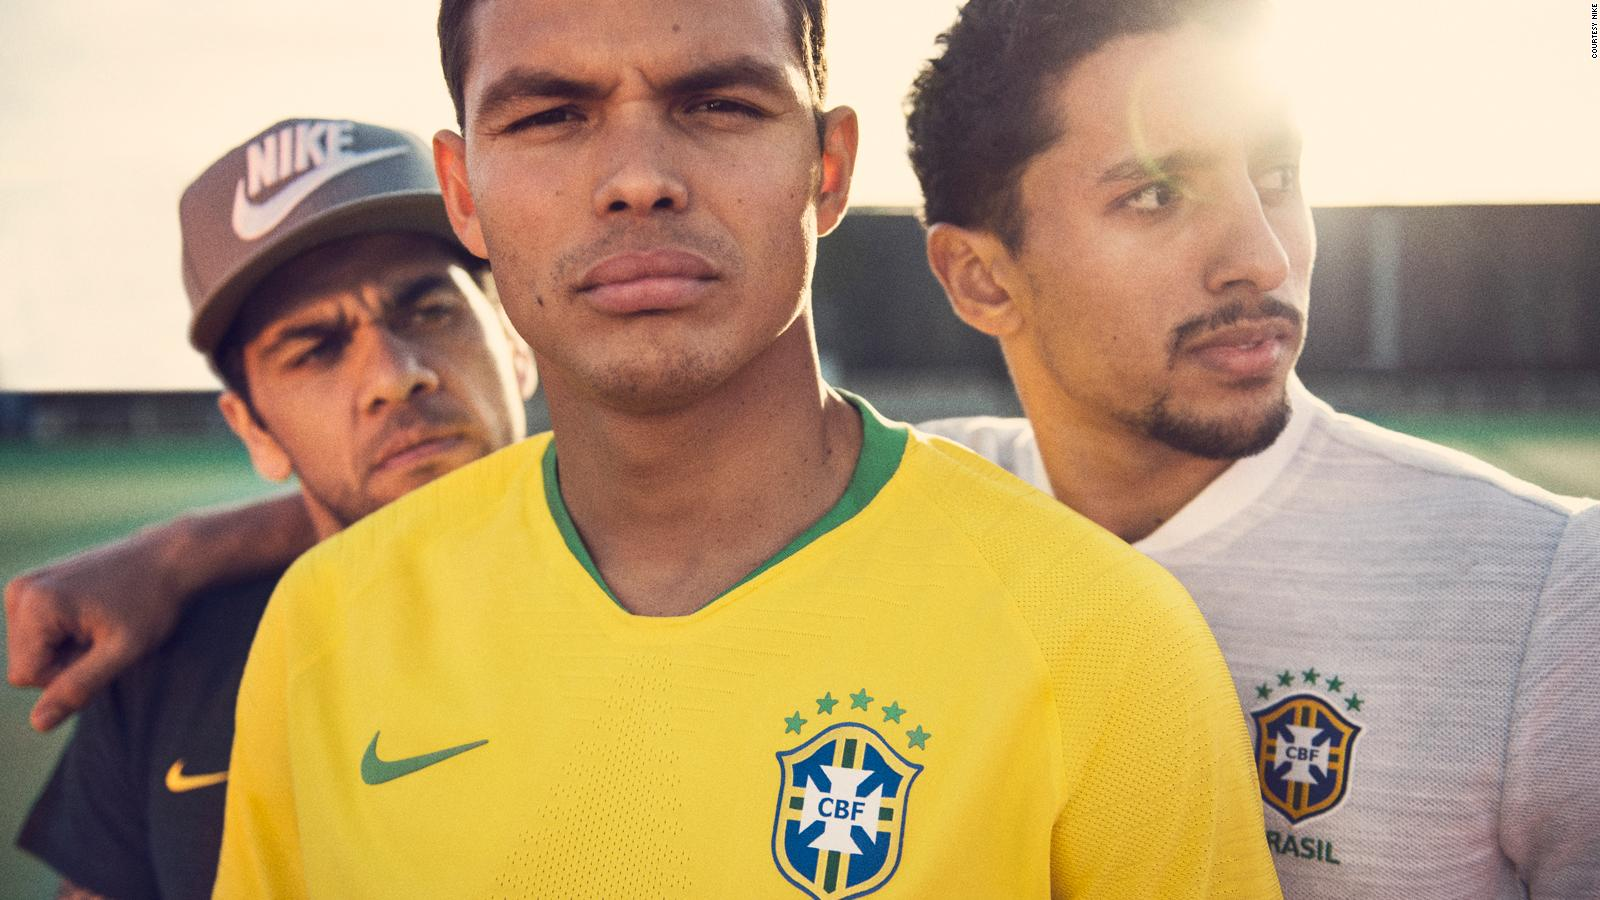 56ad3c77885 World Cup 2018 kits  The most stylish team shirts - CNN Style